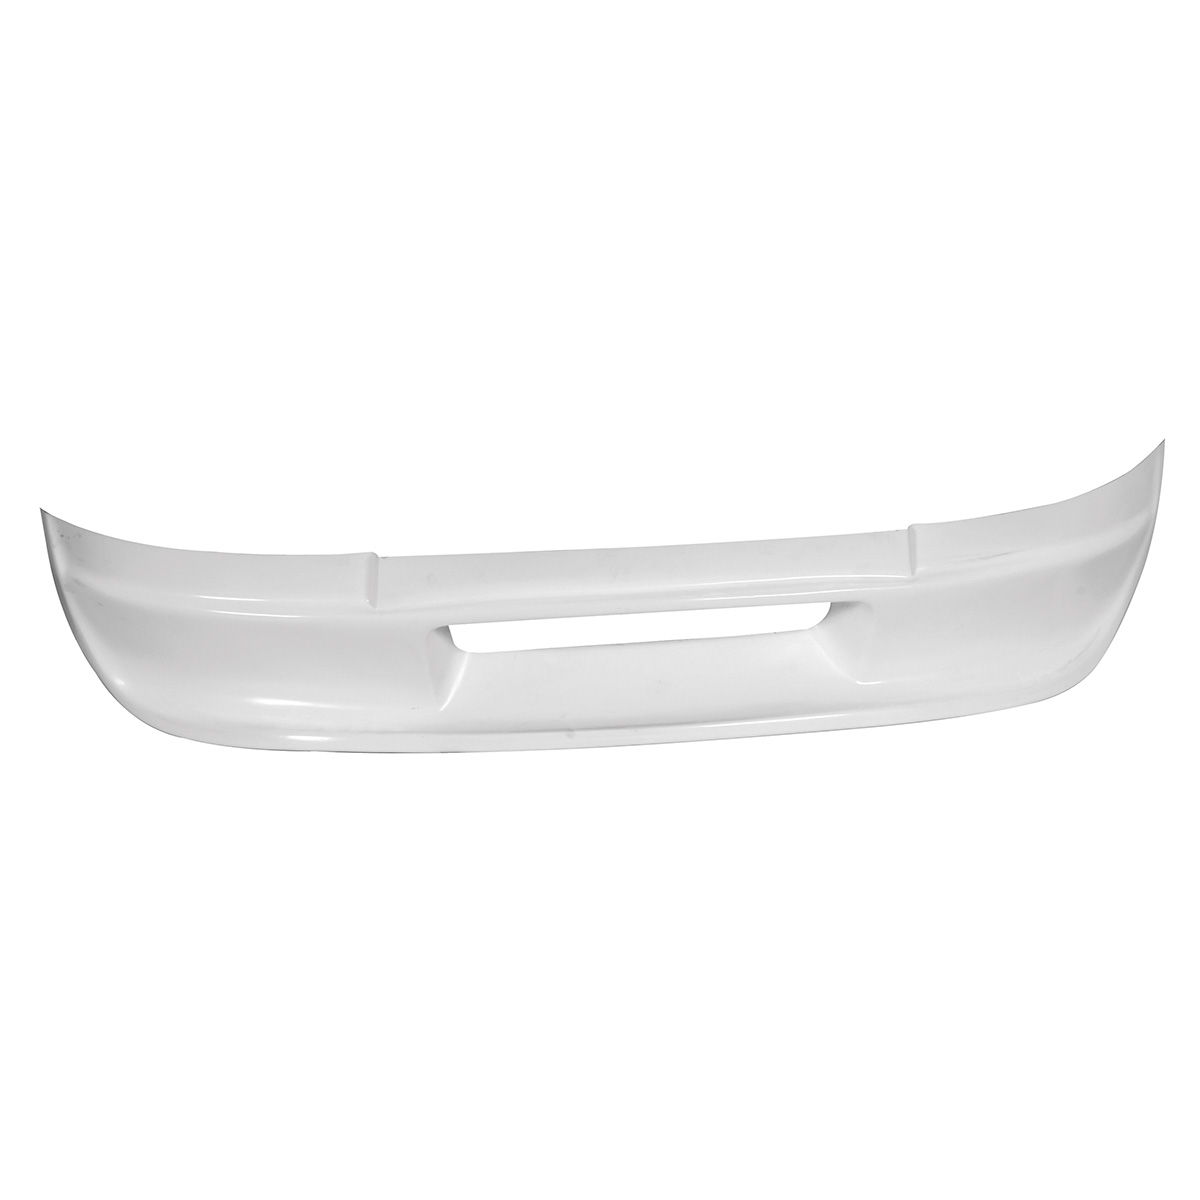 MGB-FRONT SPOILER-Leyland Spécial Tuning Style-ABS Plastique Neuf STR189A